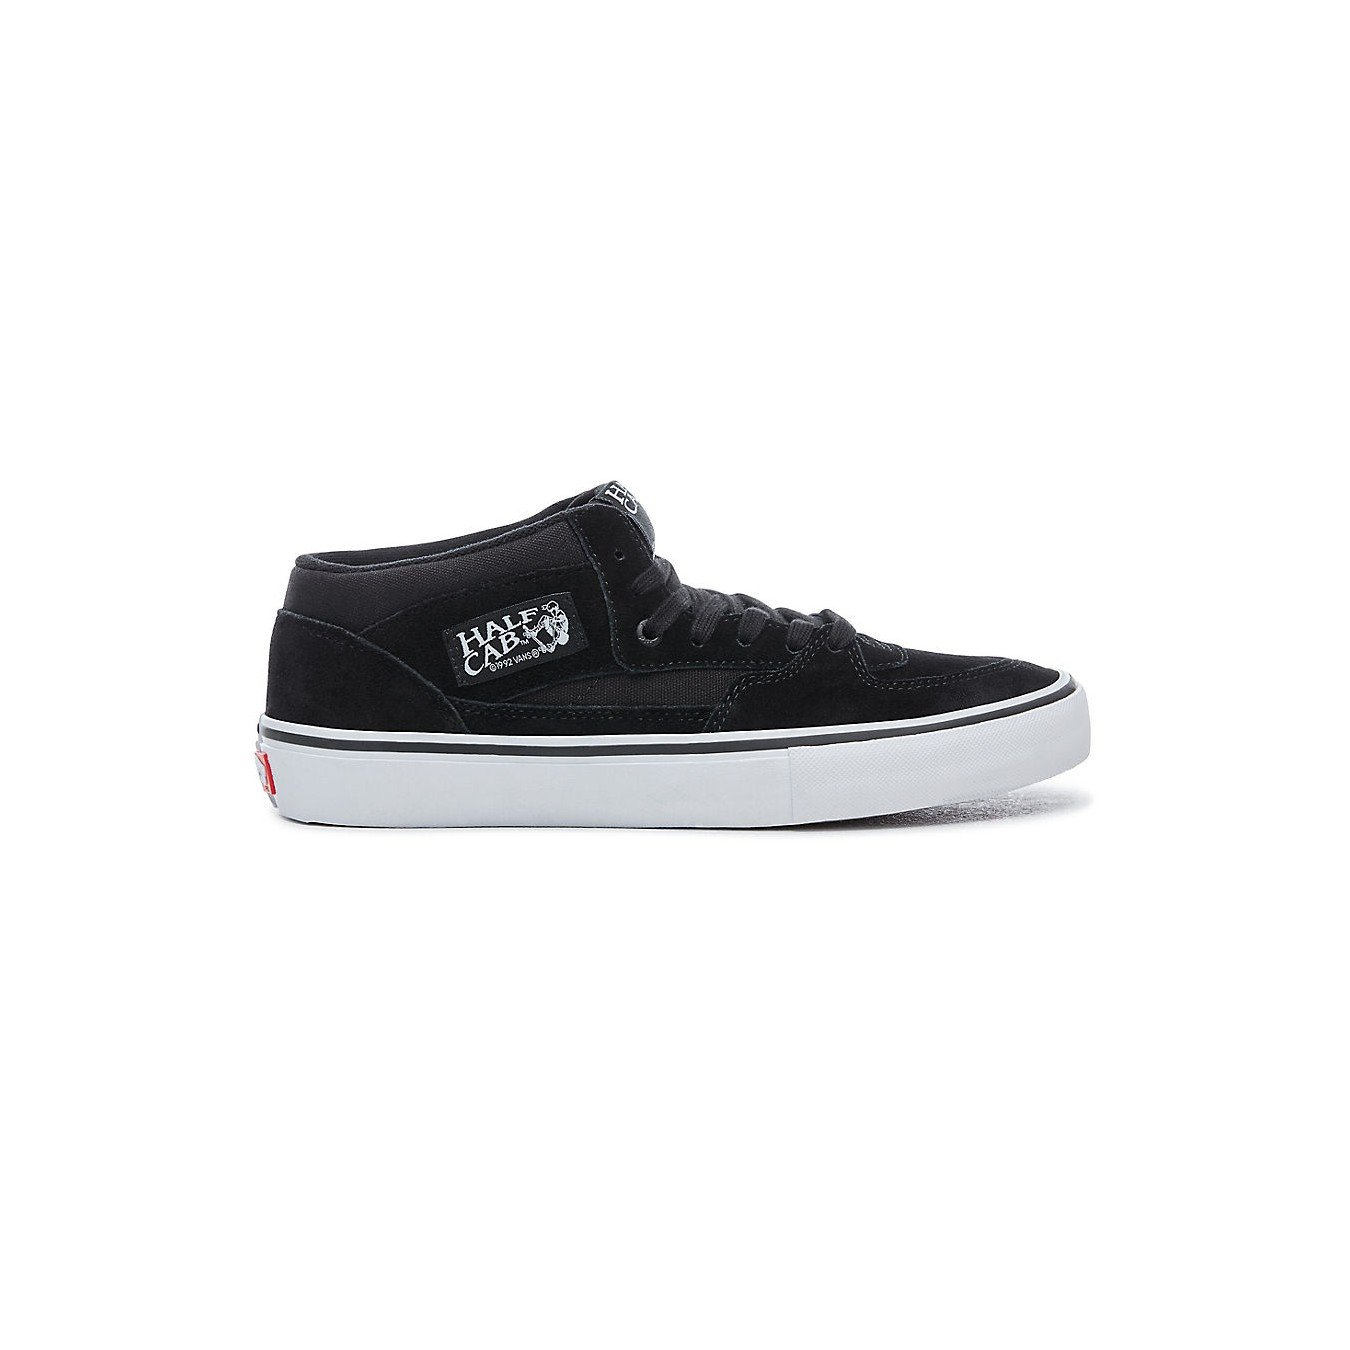 e259de8095b3fb Galleon - Vans Men s Half Cab Pro Shoes Black Black White 9.5